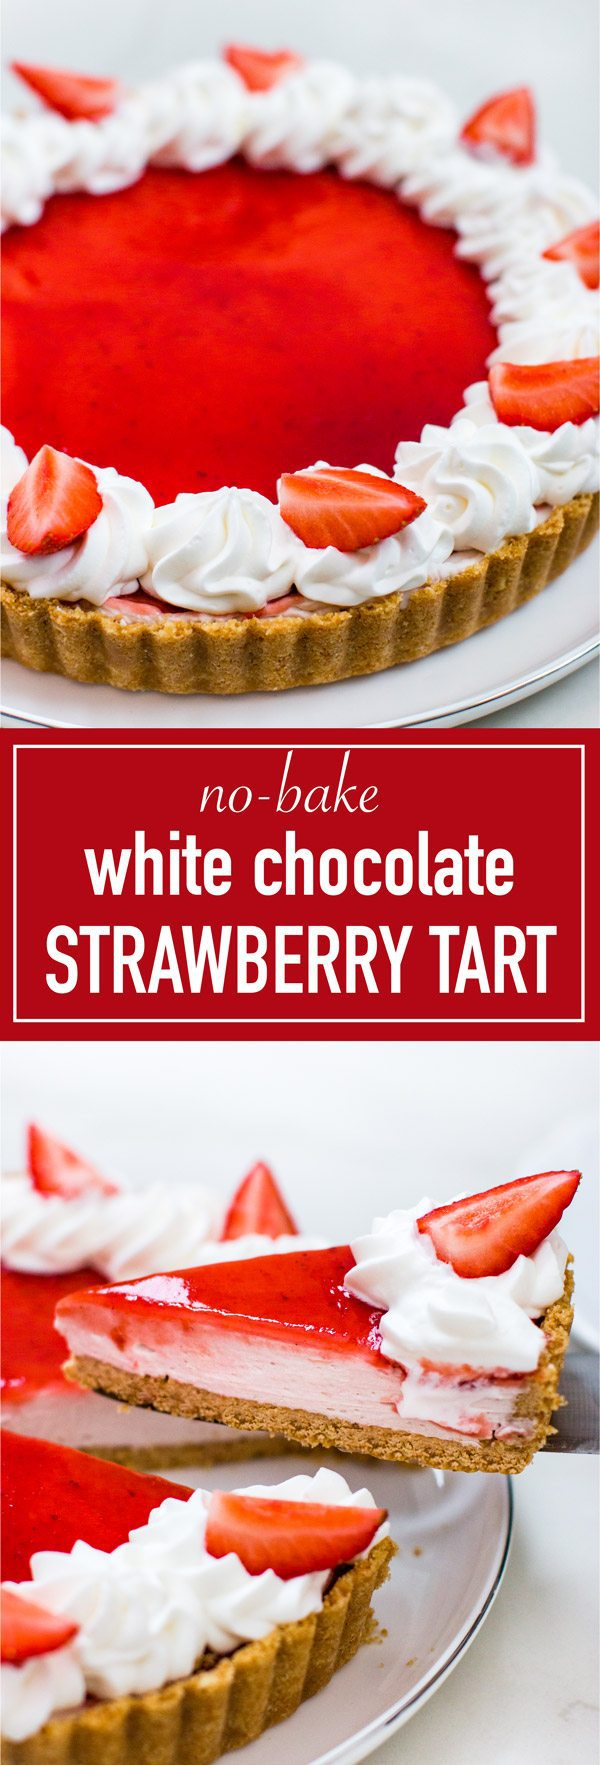 Easy and simple to make white chocolate strawberry tart. 3 layers of of cookie crust, white chocolate ganache mousse, and strawberry jam glaze.